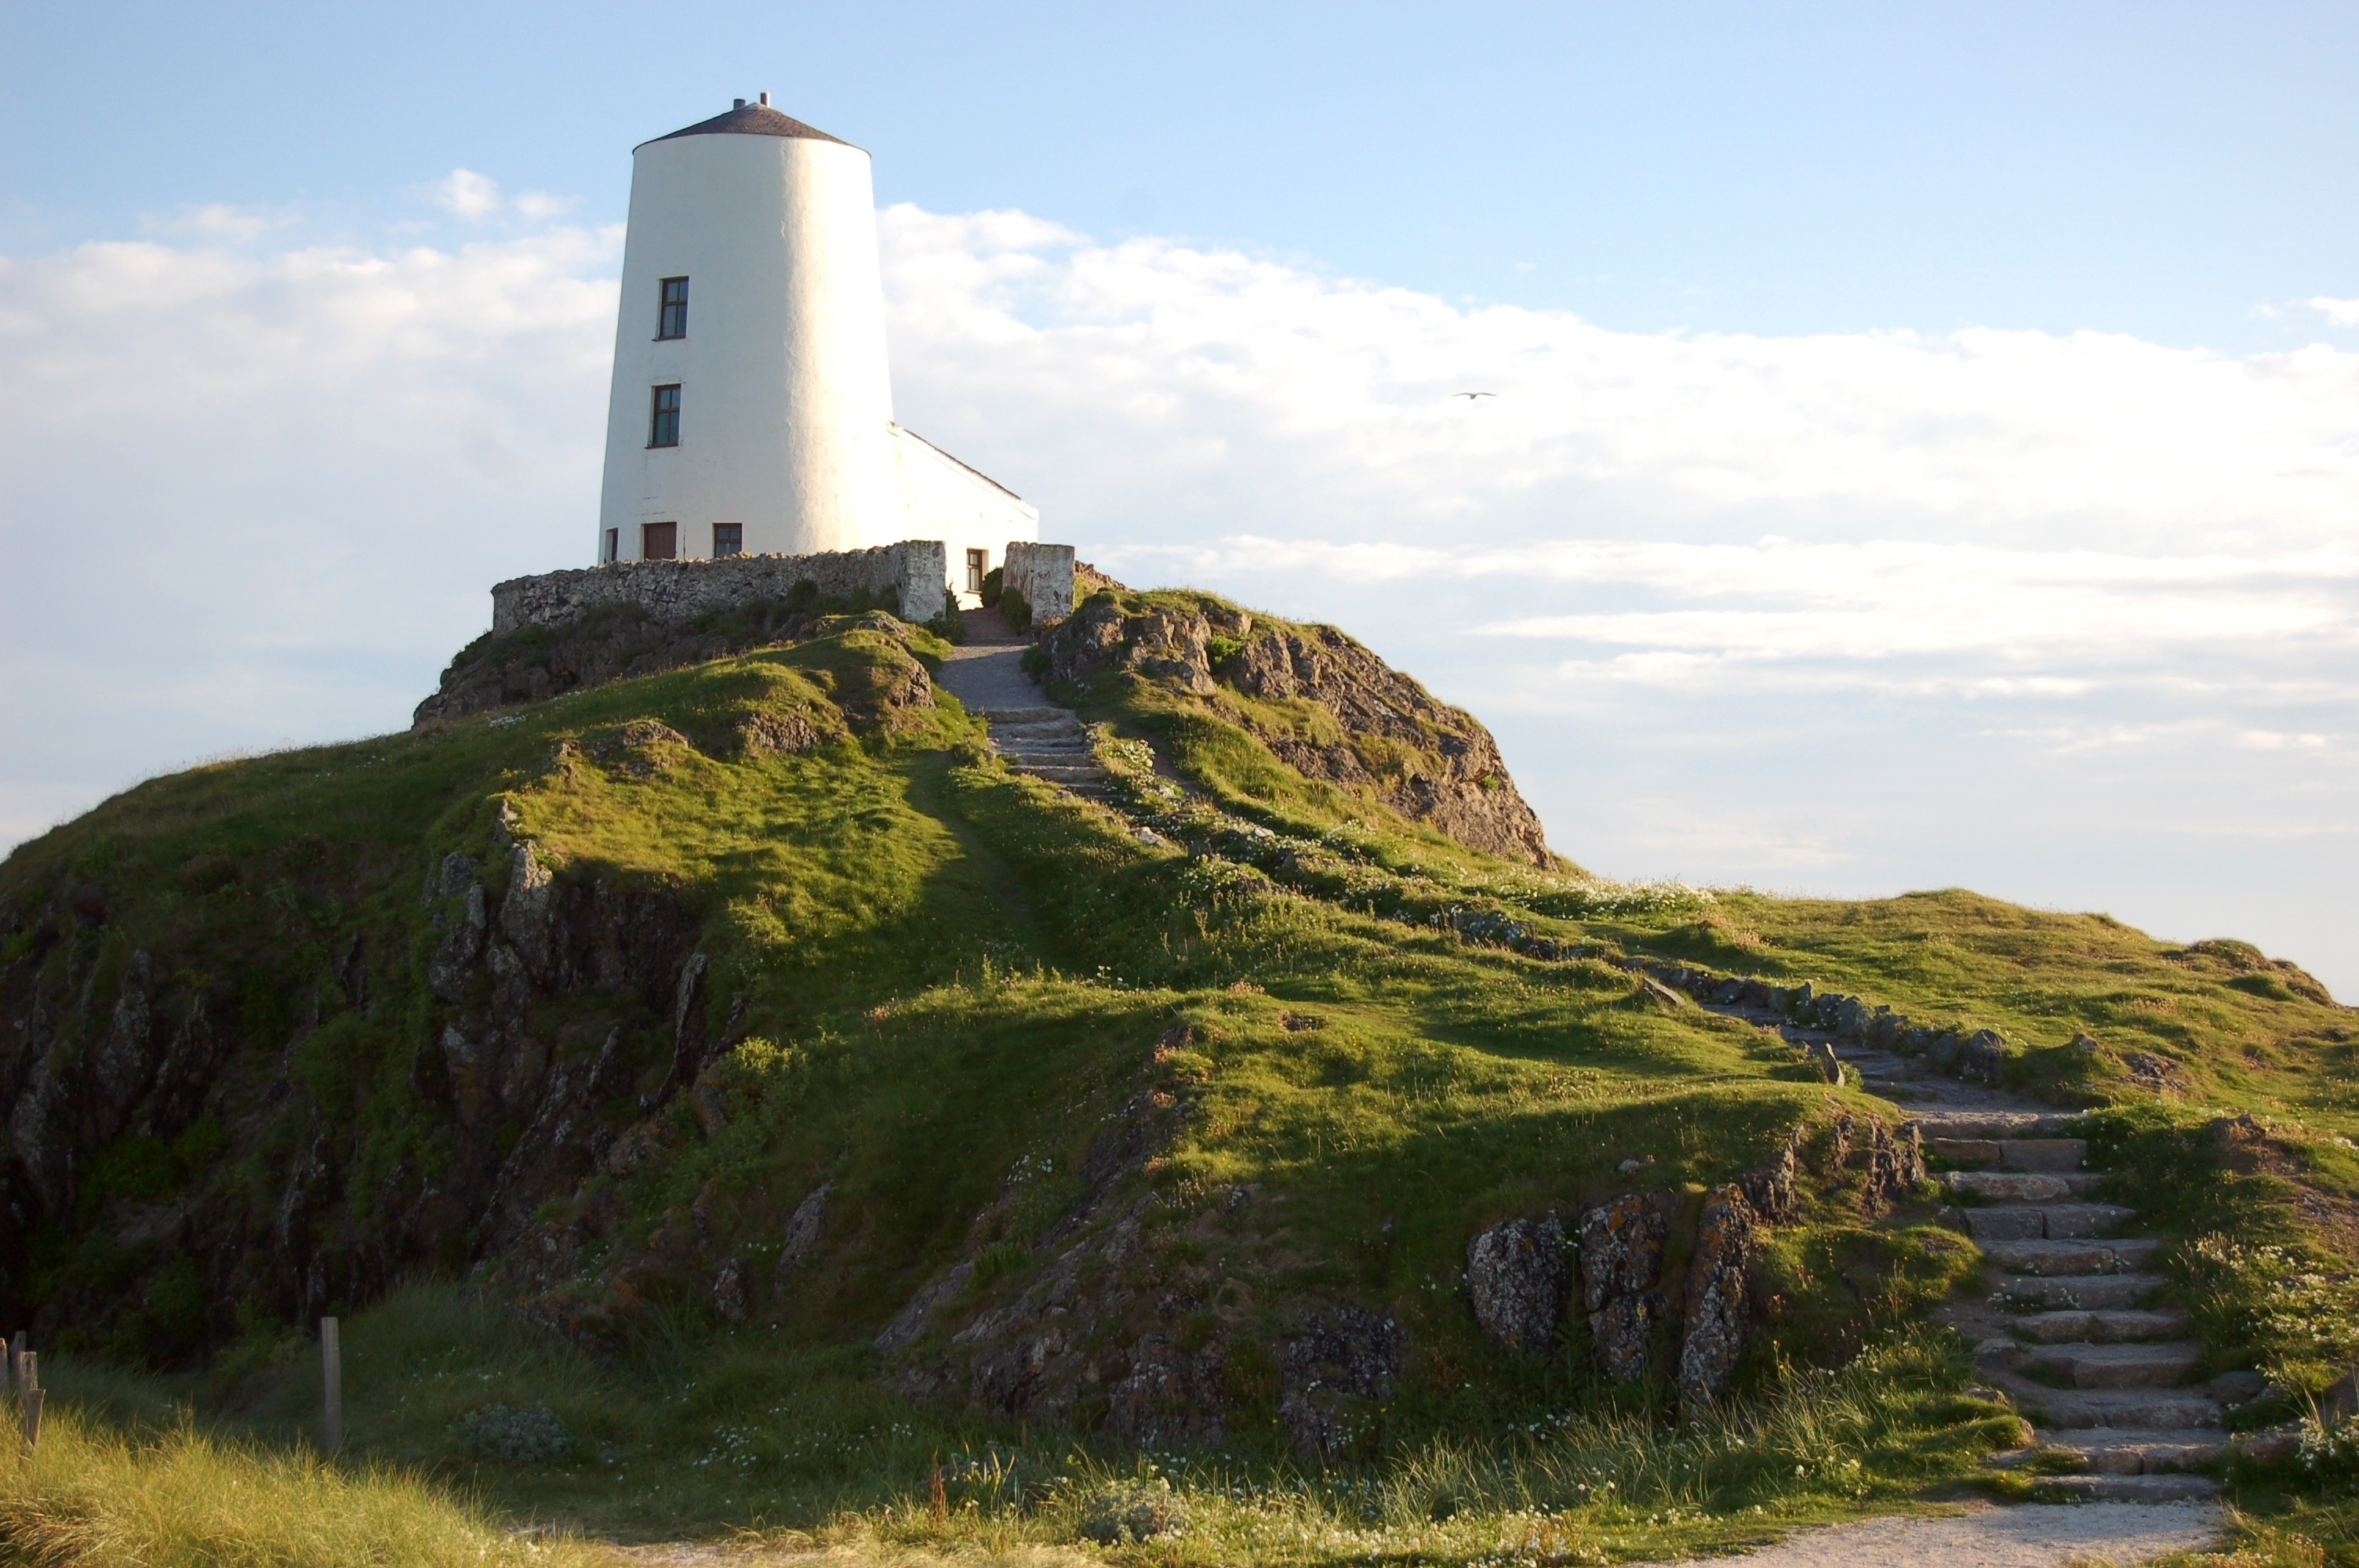 http://rhosyr.co.uk/wp-content/uploads/2017/01/LLANDDWYN-JULY-2012-077.jpg